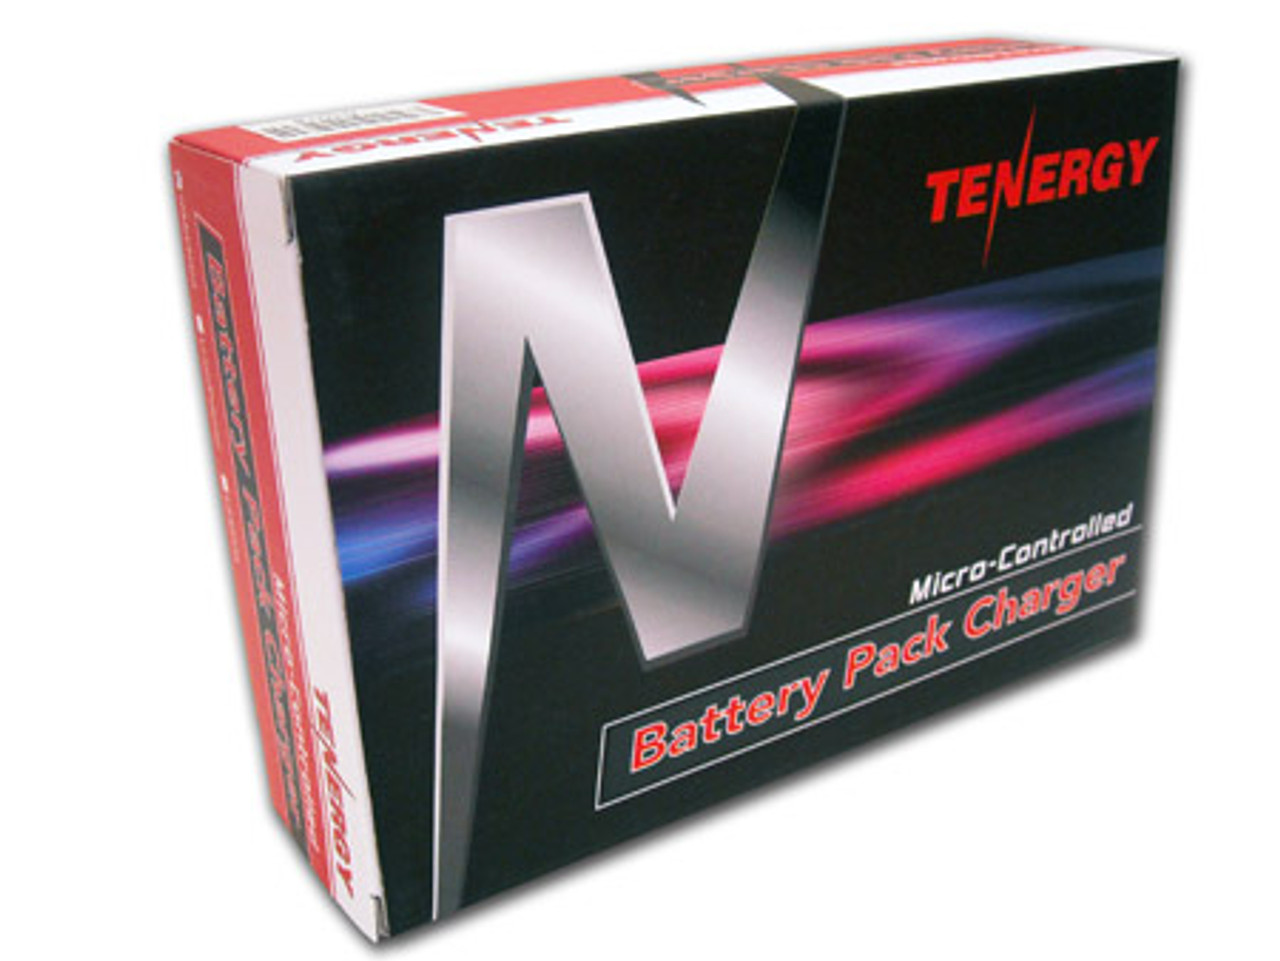 Tenergy 18.5V (5S) Li-Ion/LiPO Battery Pack Fast Smart Charger (Output: 21.0V, 2.5A)